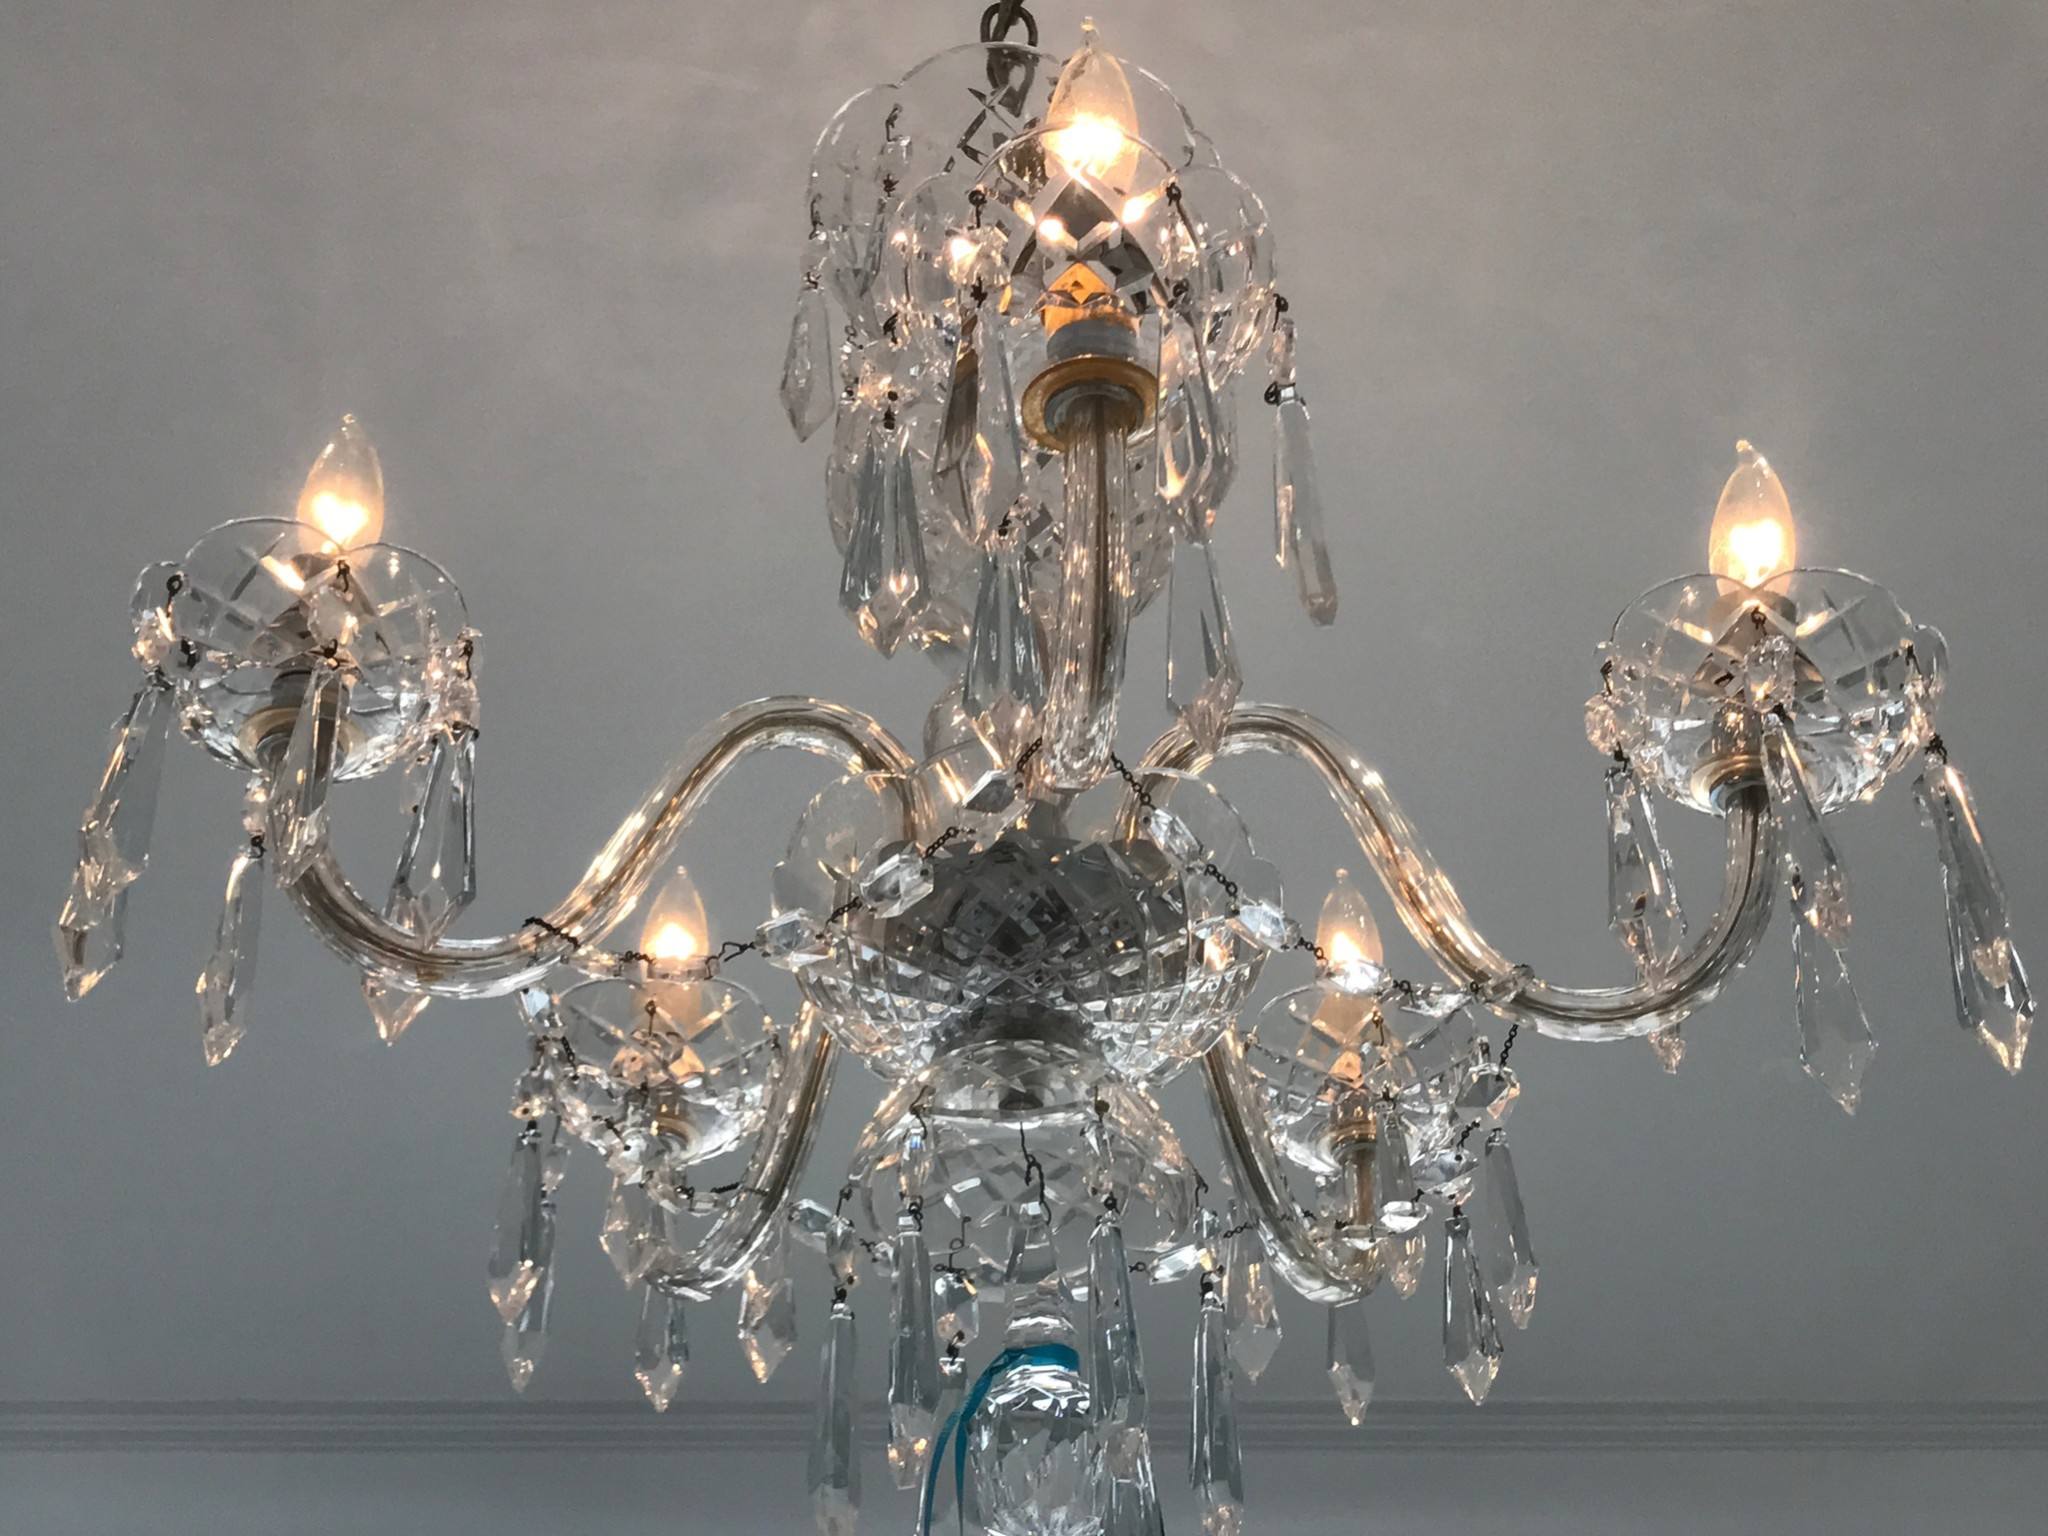 Waterford 5 arm comeragh chandelier for sale at watercress waterford 5 arm comeraugh chandelier arubaitofo Image collections